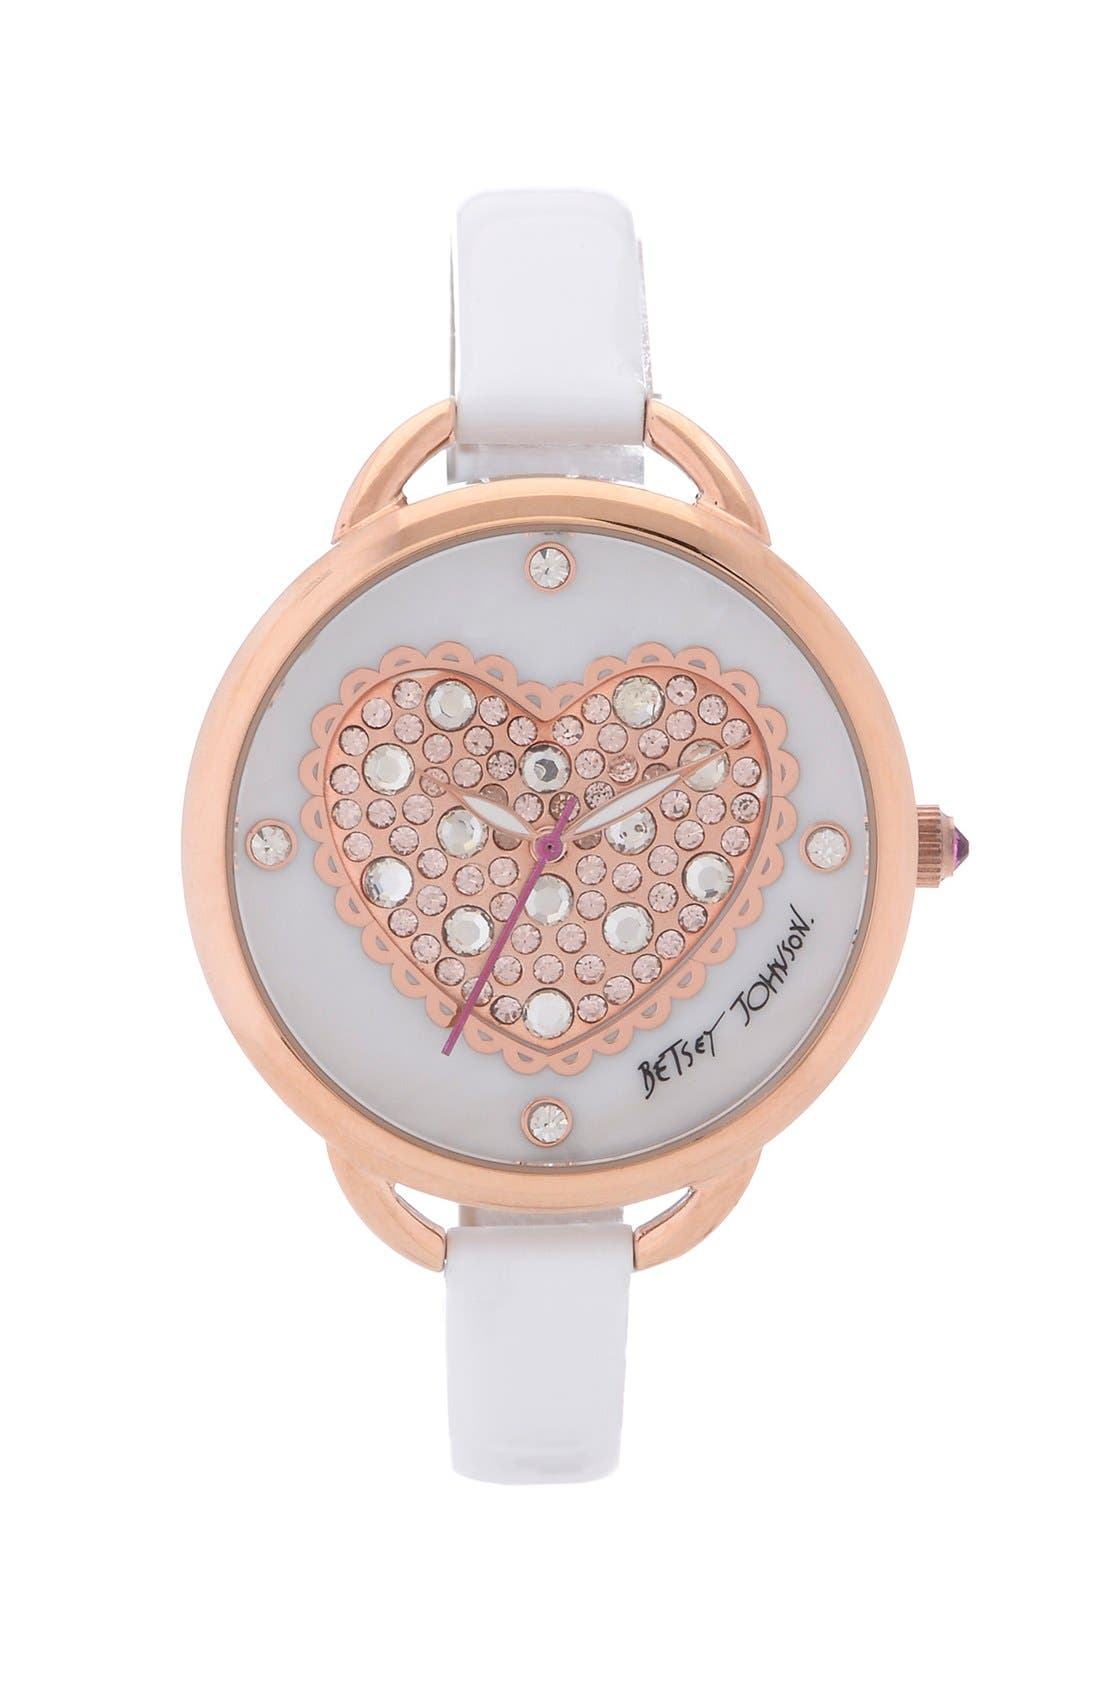 Main Image - Betsey Johnson Pavé Heart Dial Leather Strap Watch, 40mm